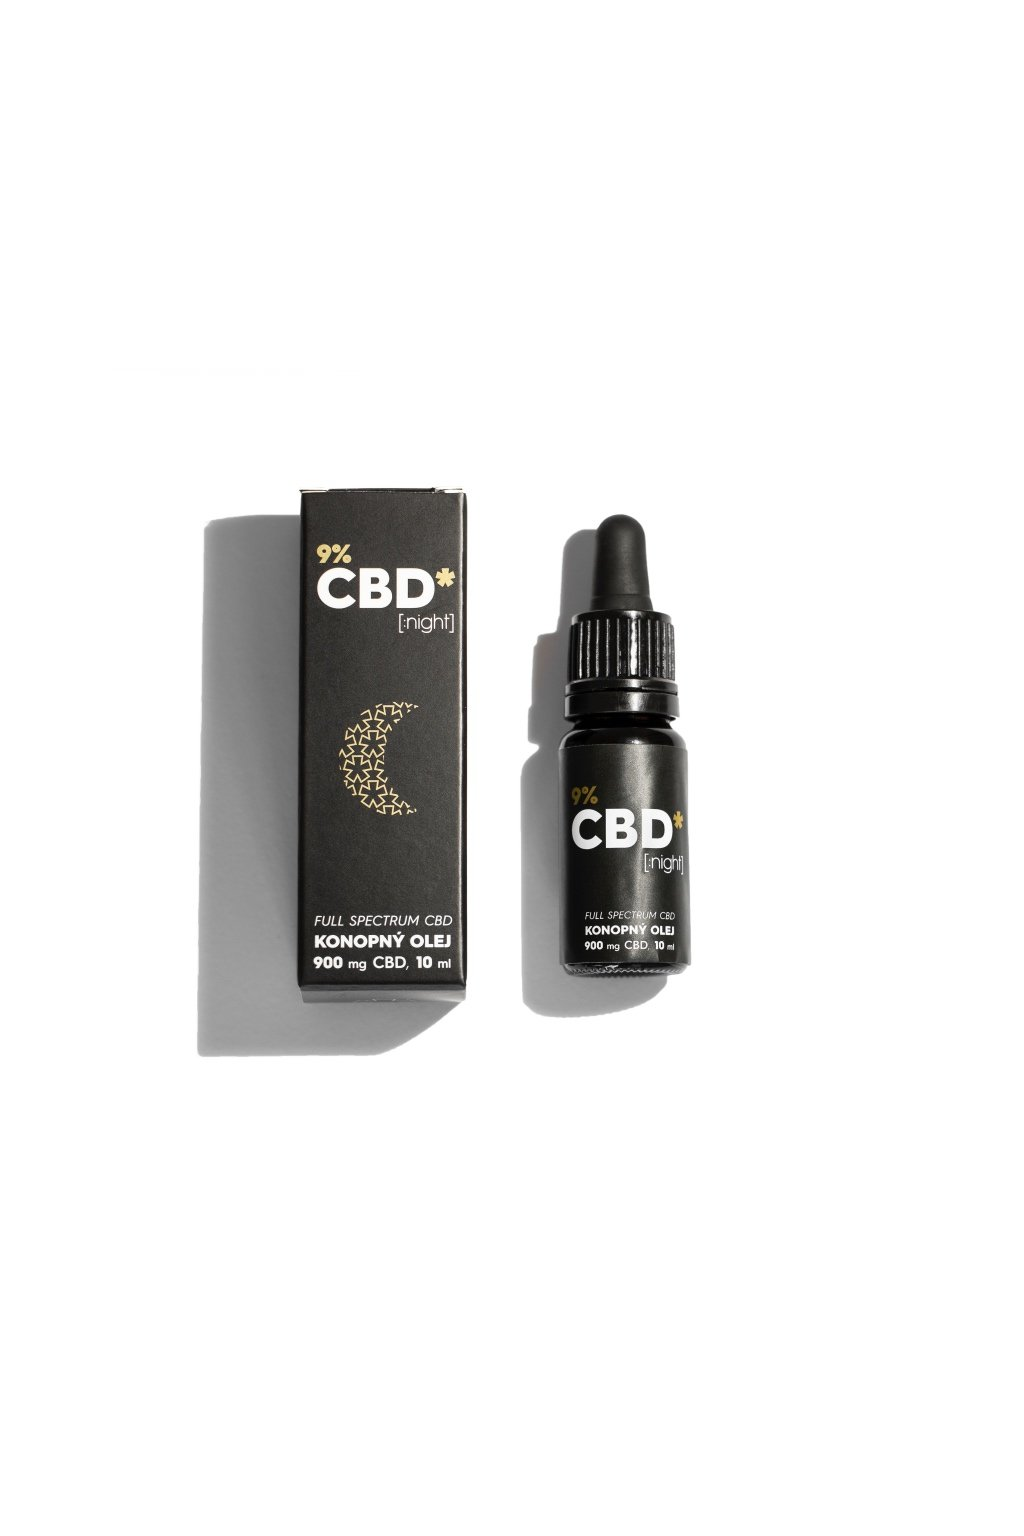 vyrn 452cbd olej night 9 10ml cbdstar cbdshop cbdvo